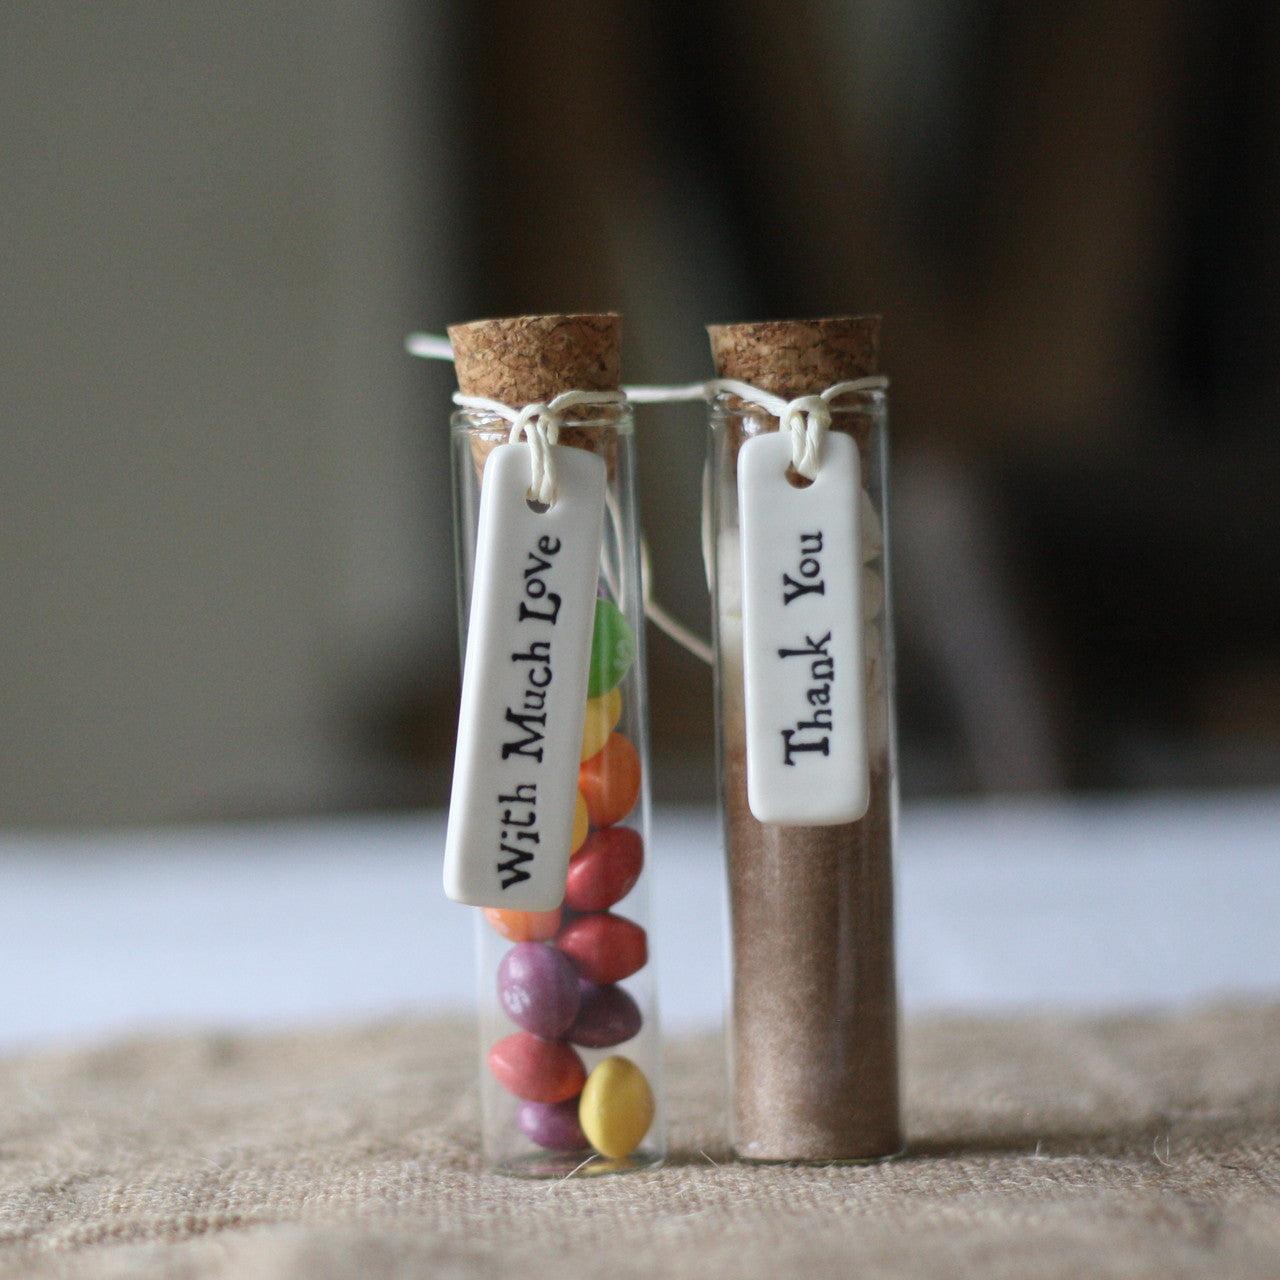 Test Tube Wedding Favour With Cork Stopper – The Wedding of My Dreams